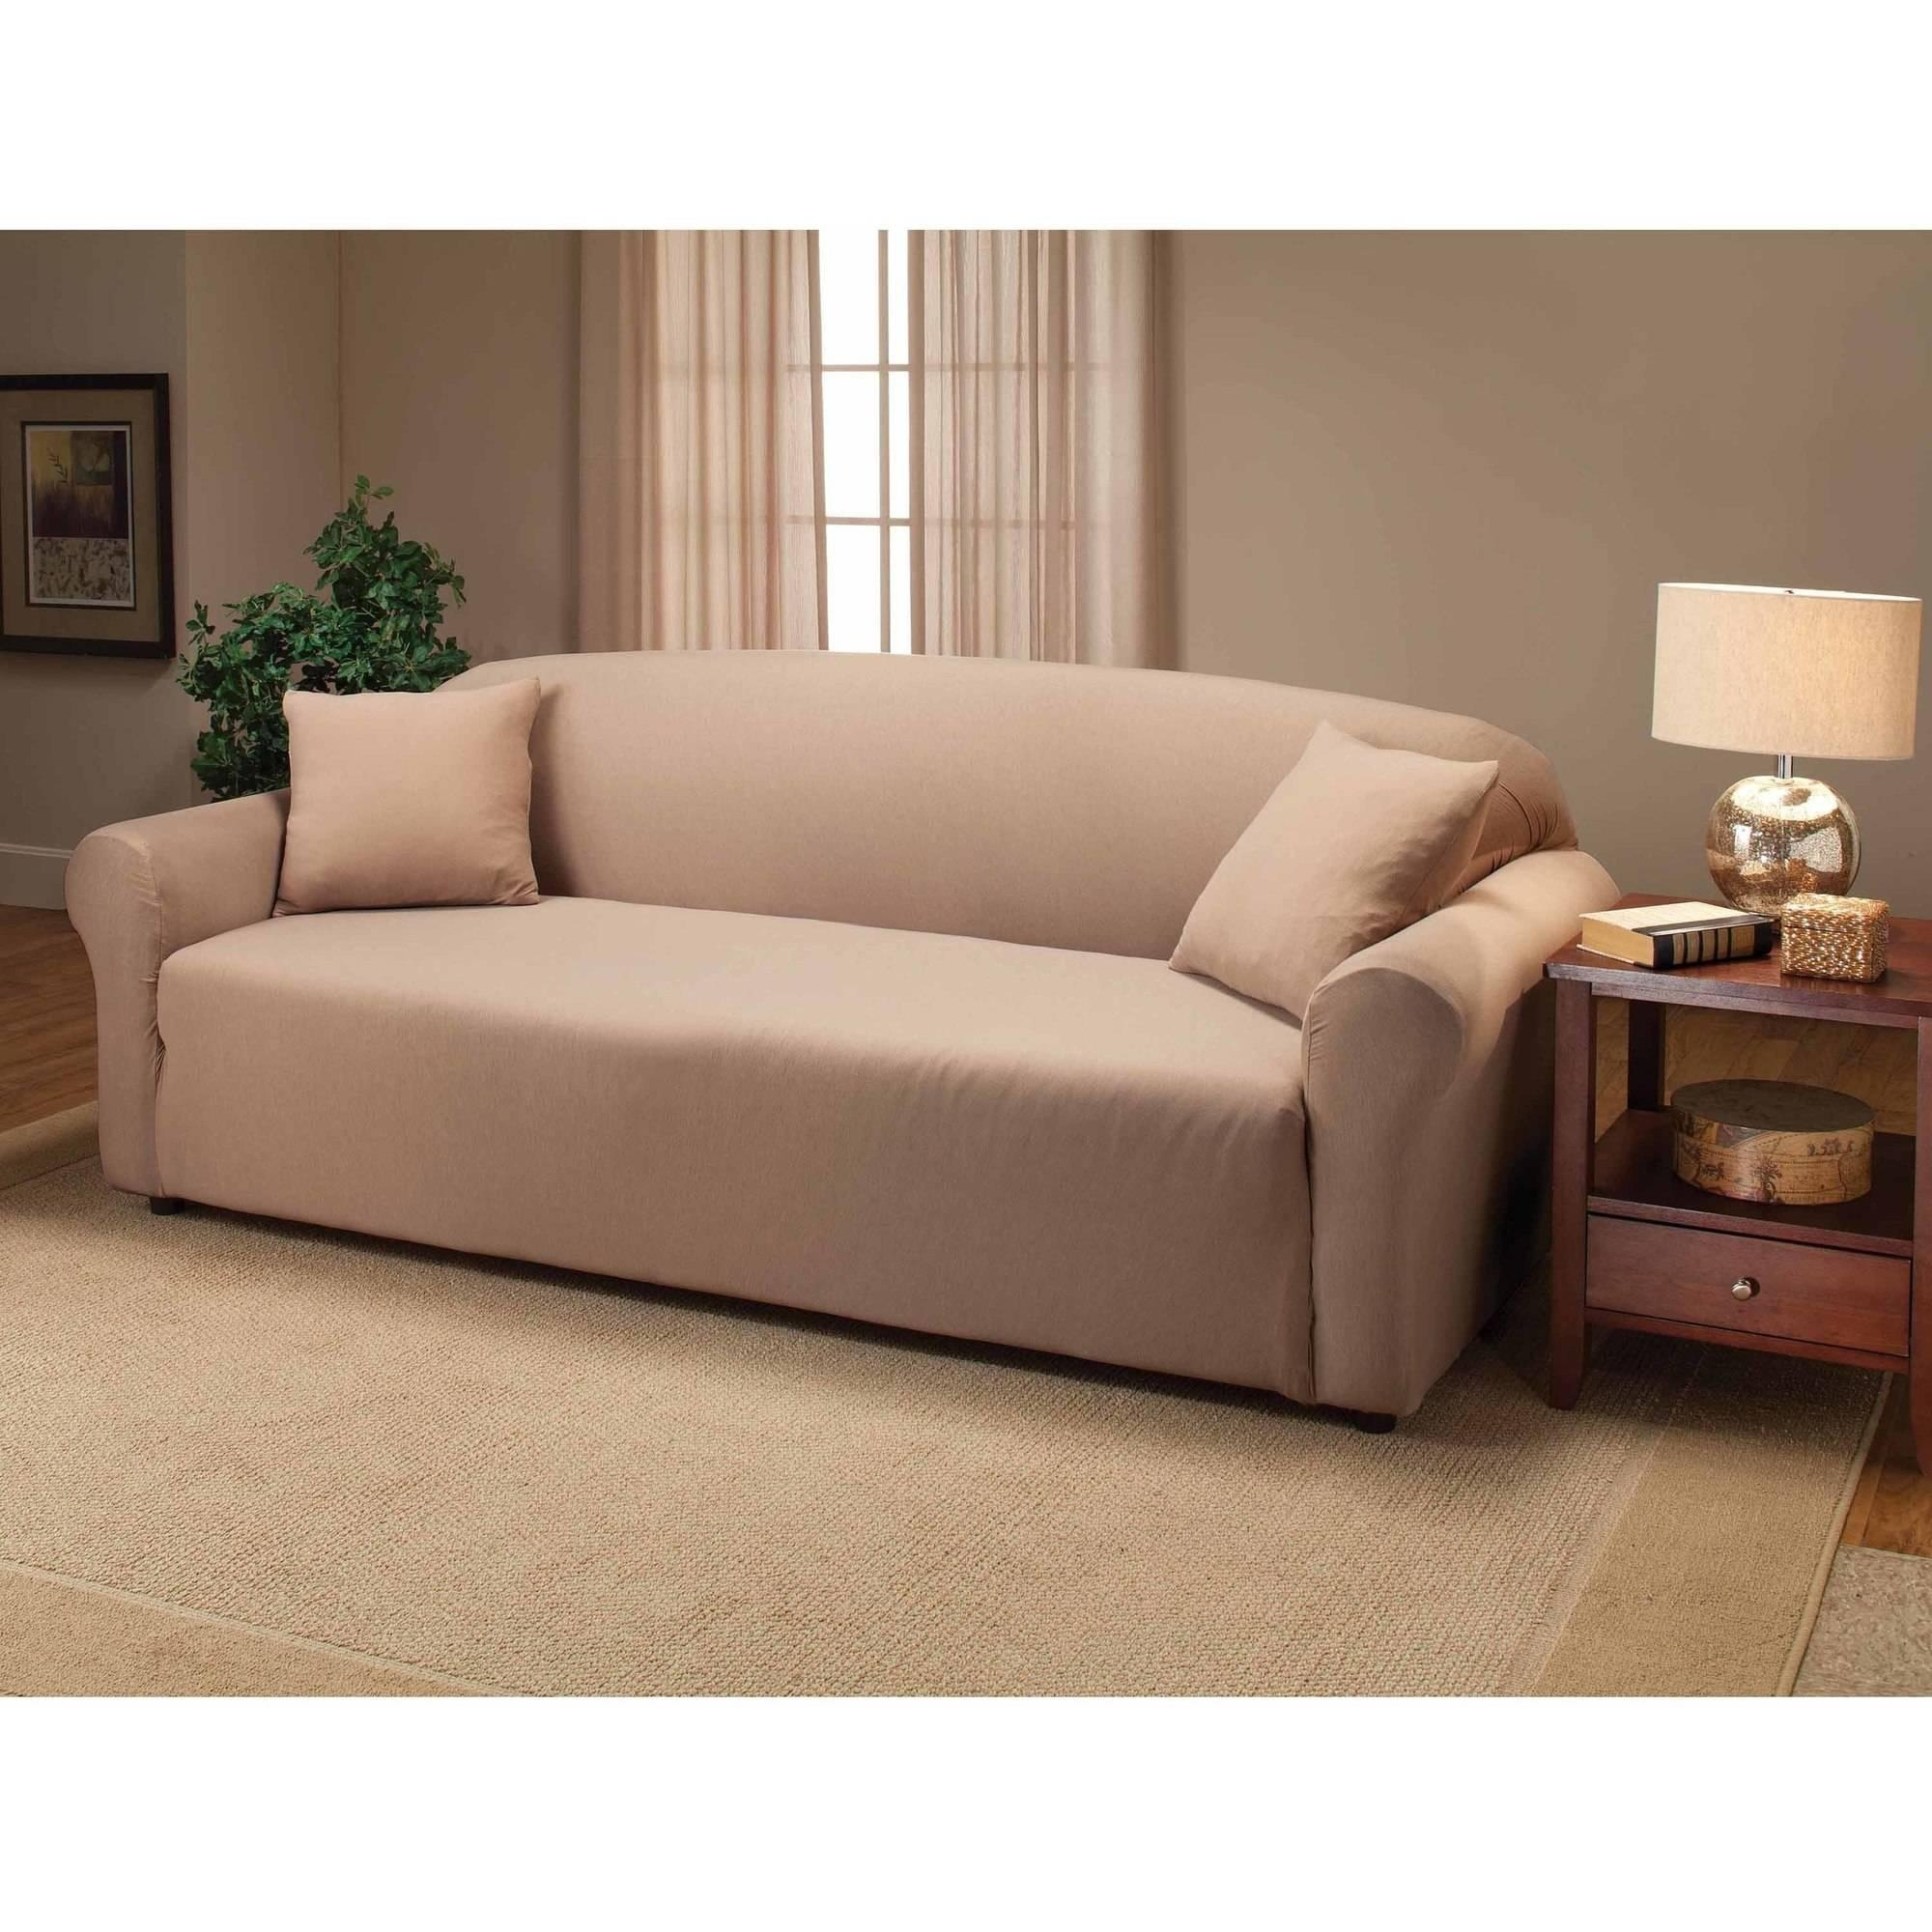 Slipcovers – Walmart Inside Sleeper Sofa Slipcovers (Image 18 of 20)